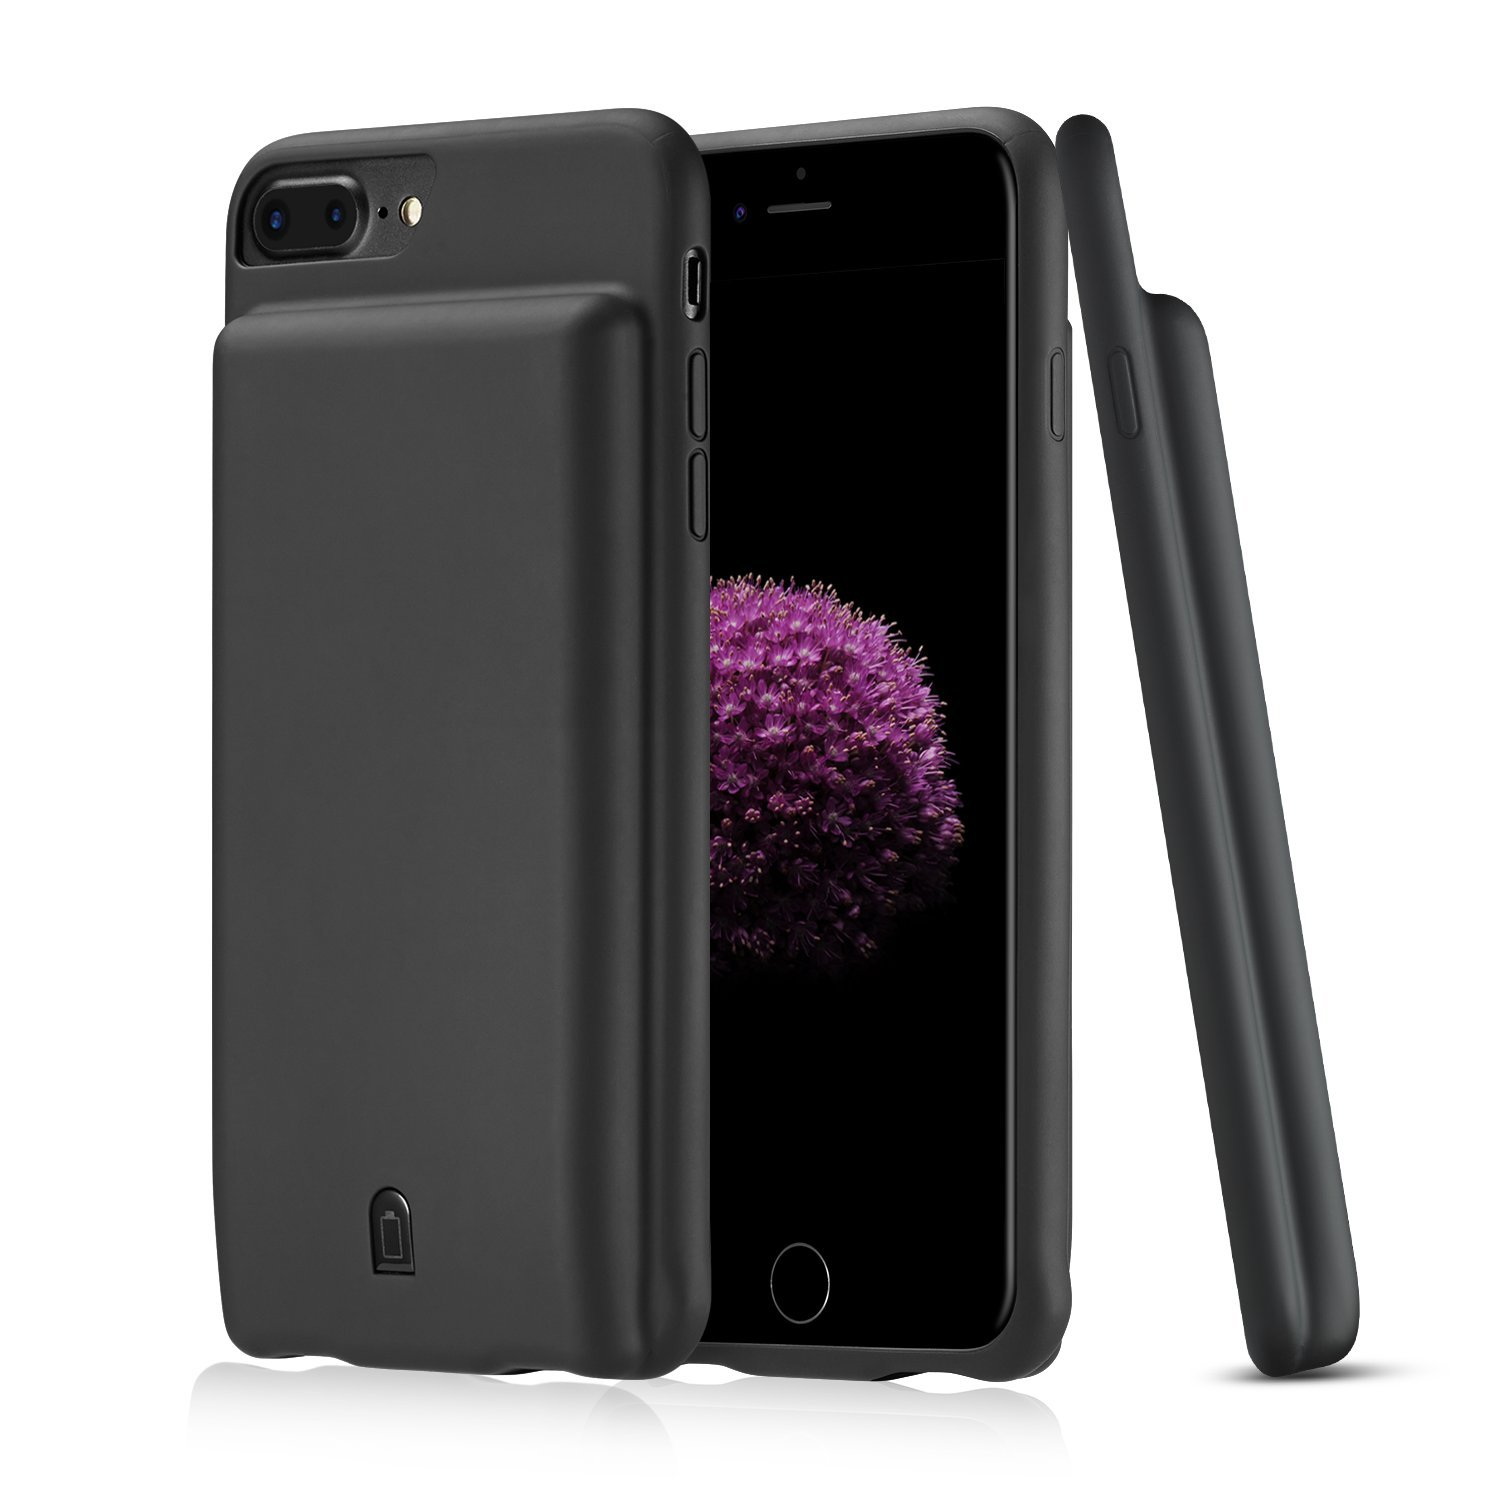 Antank iPhone 8 Plus/7 Plus/6 6s Plus Battery Case, 7000mAh Battery Charging Case External Battery Pack for iPhone (5.5inch) Protective Charger Case Backup Juice Bank Power Bank (Black)